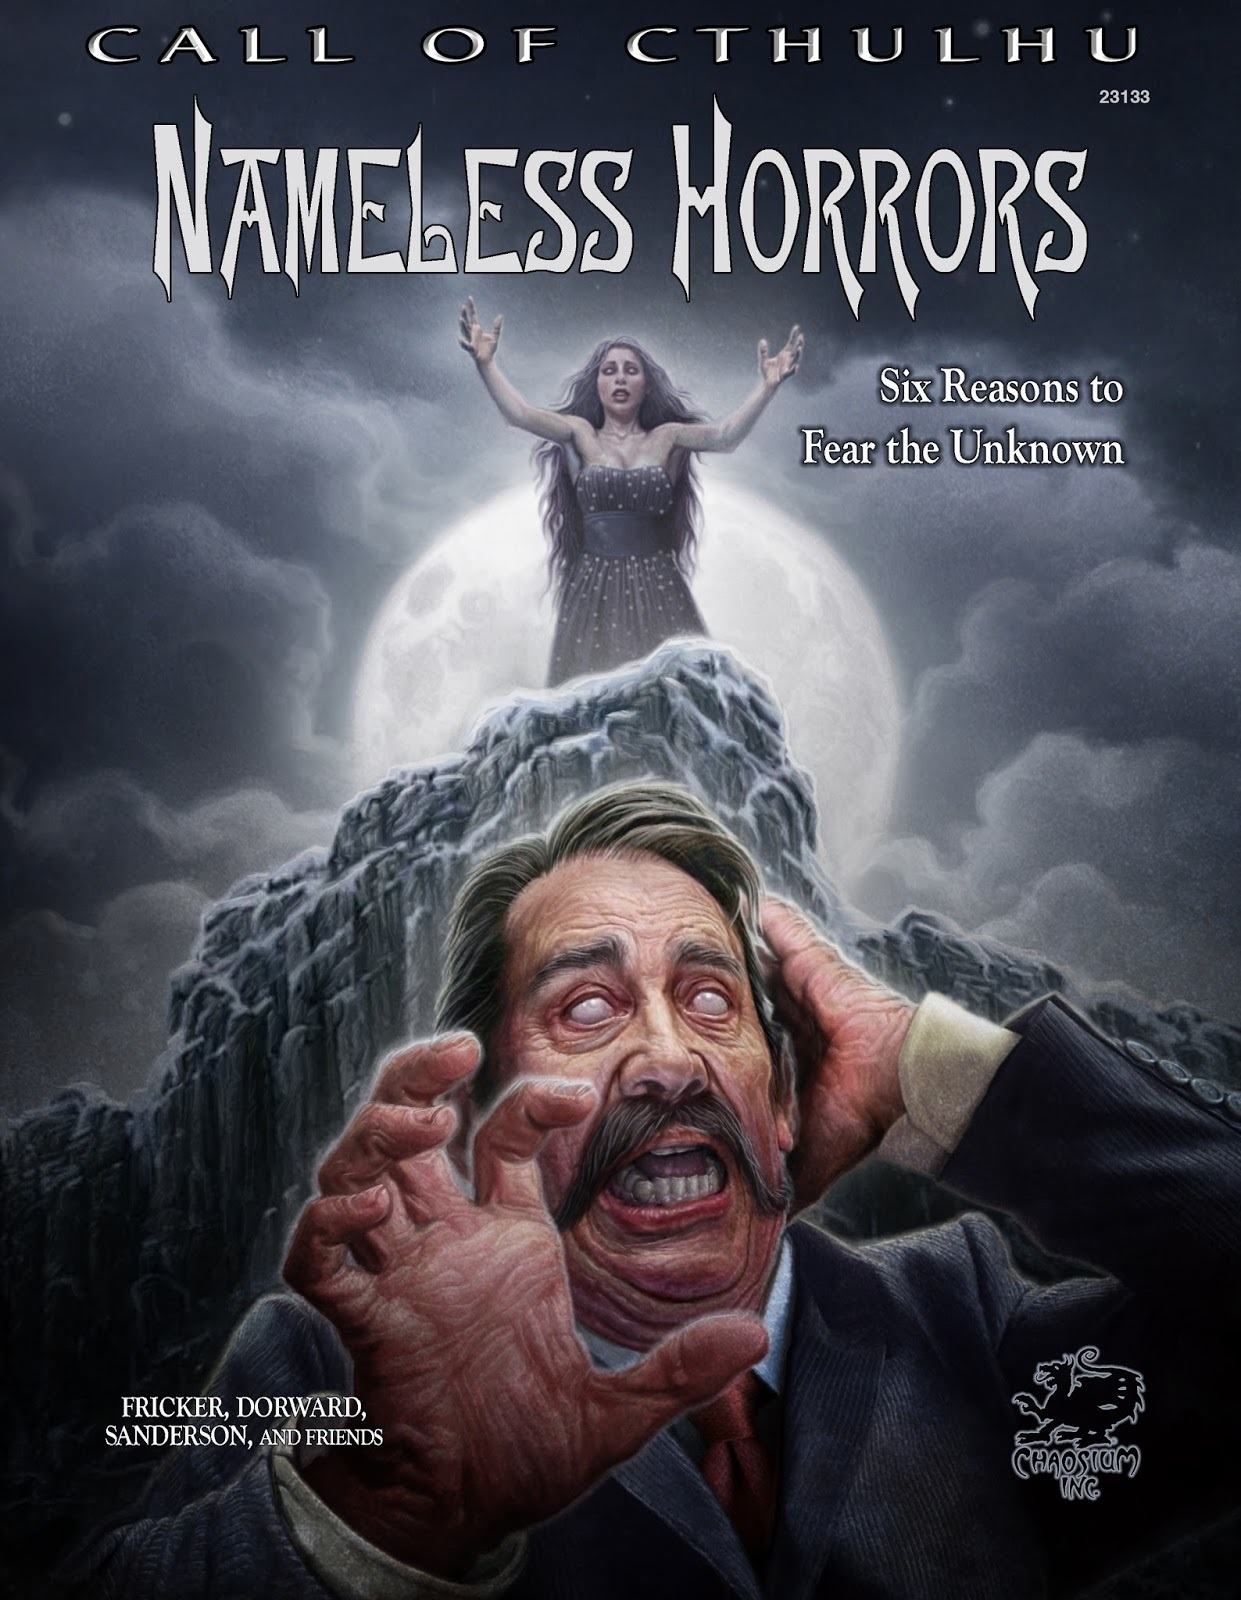 Call of Cthulhu: Nameless Horrors by Scott Dorward image